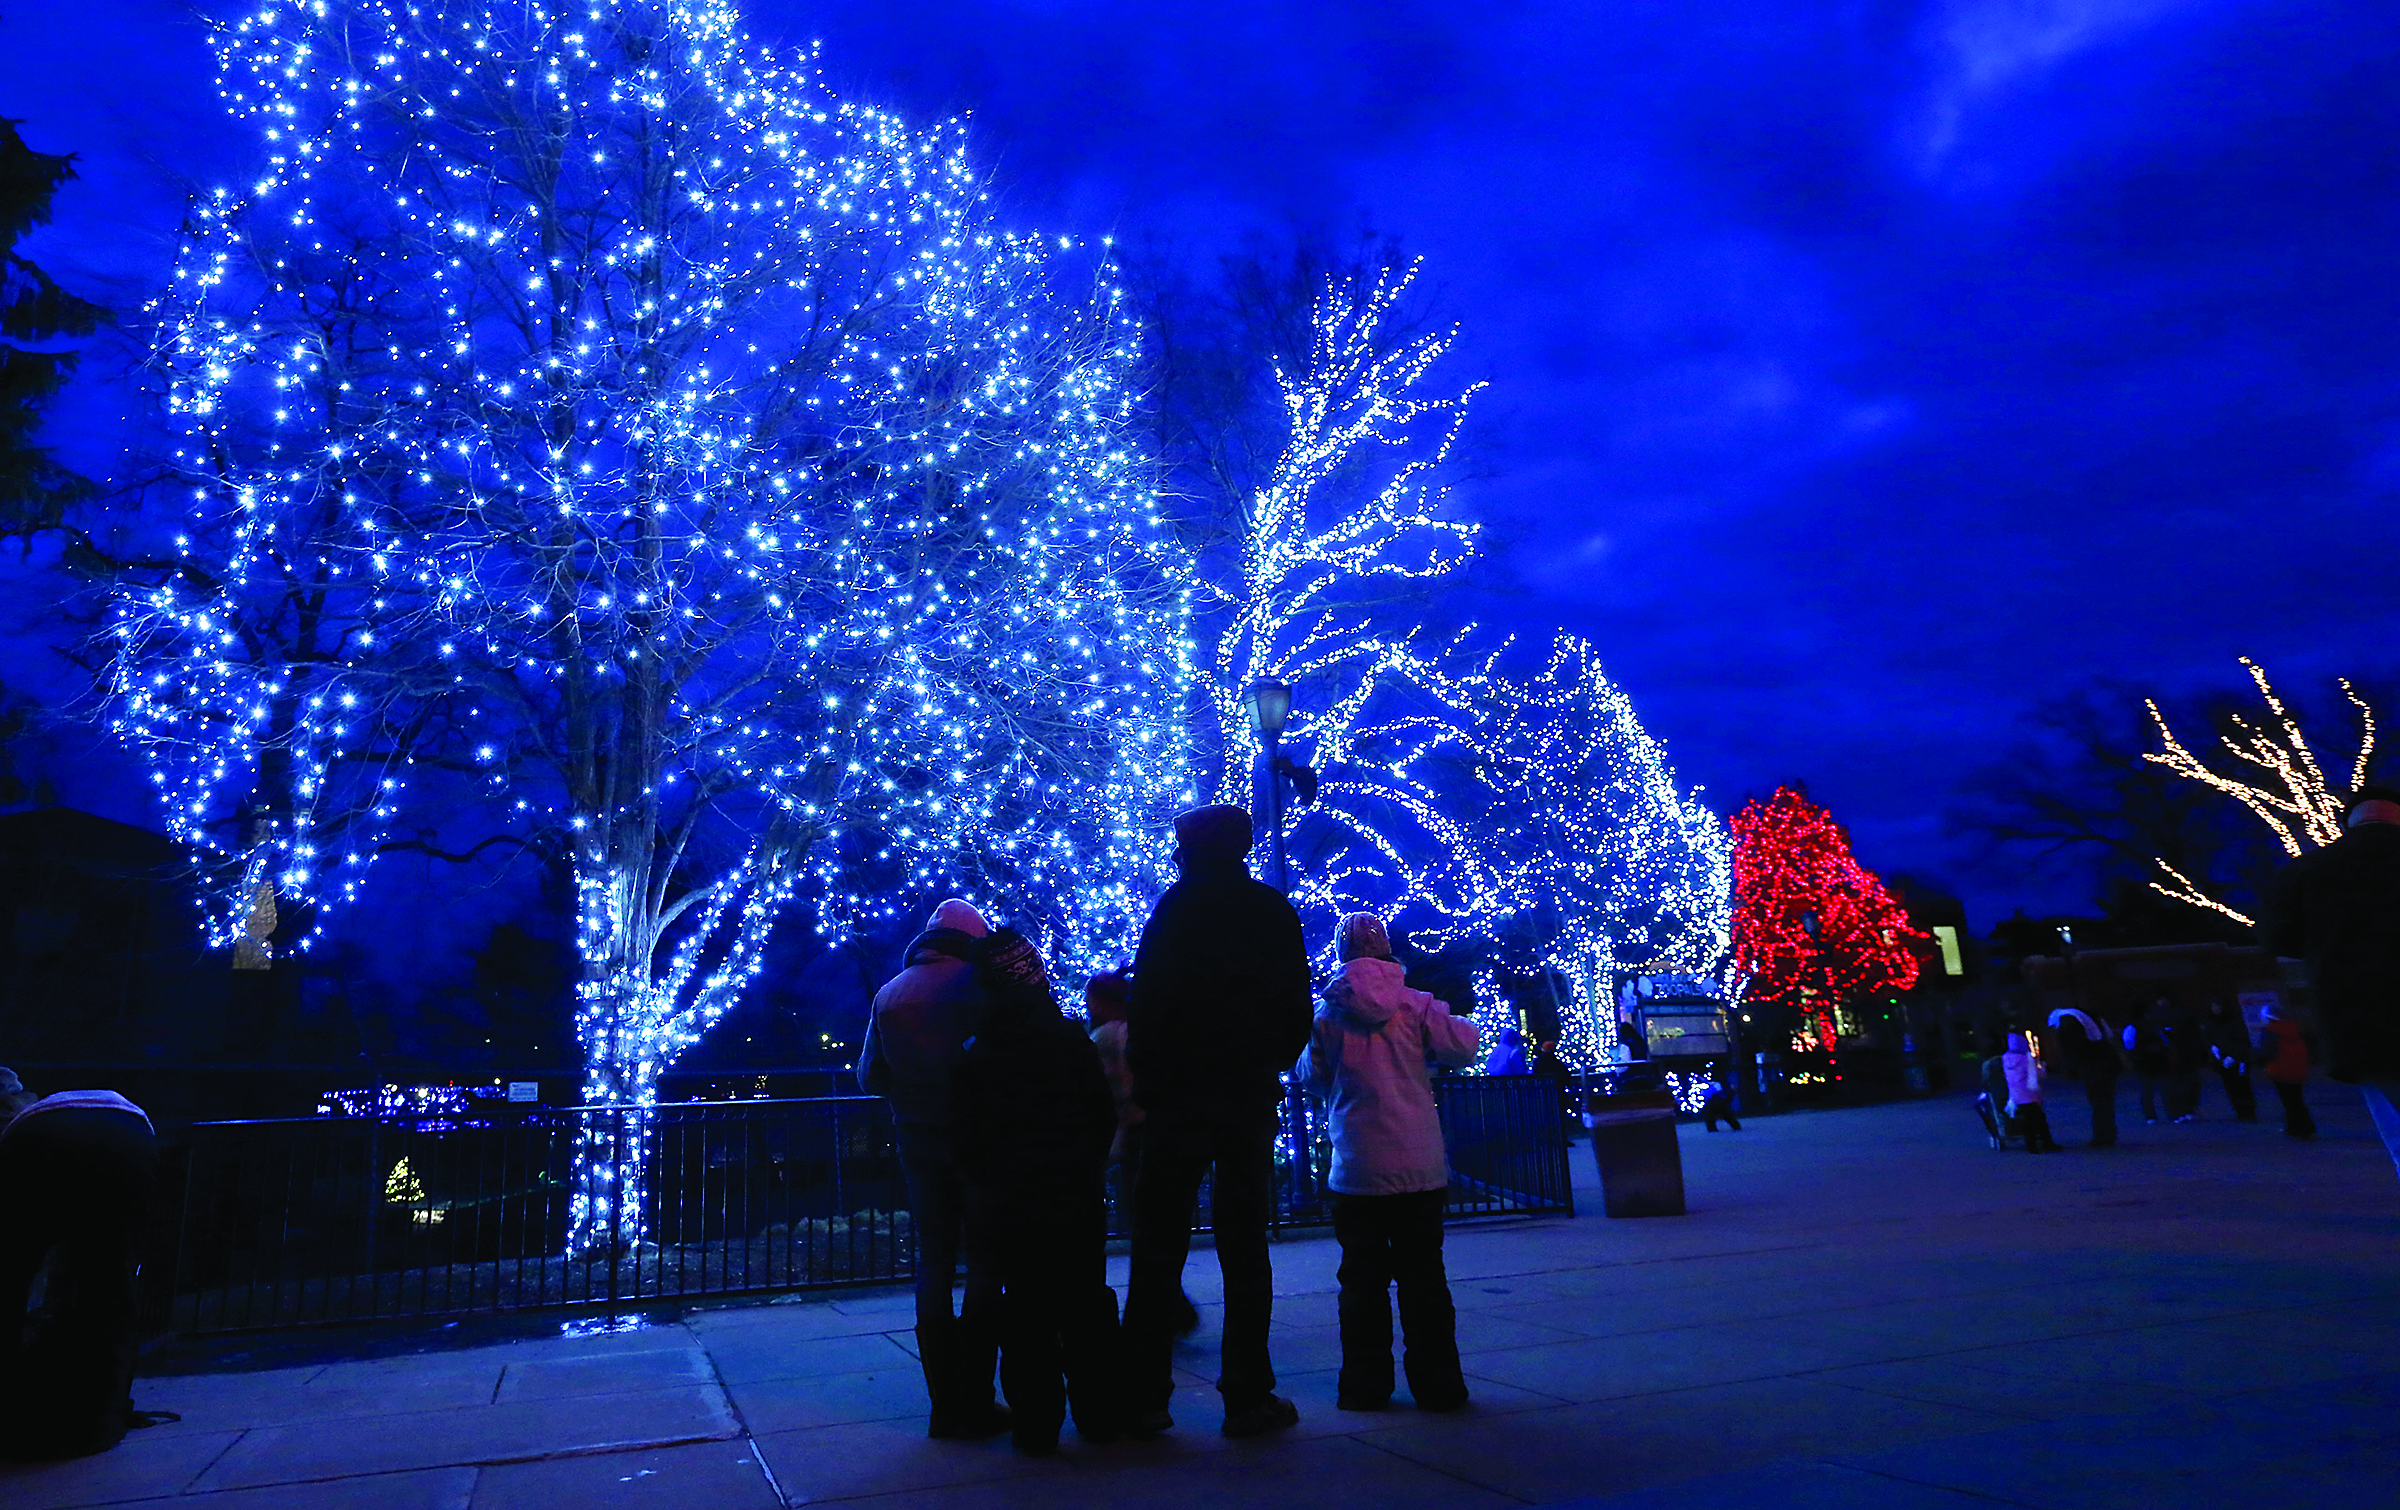 Toledo Zoo Lights Before Christmas